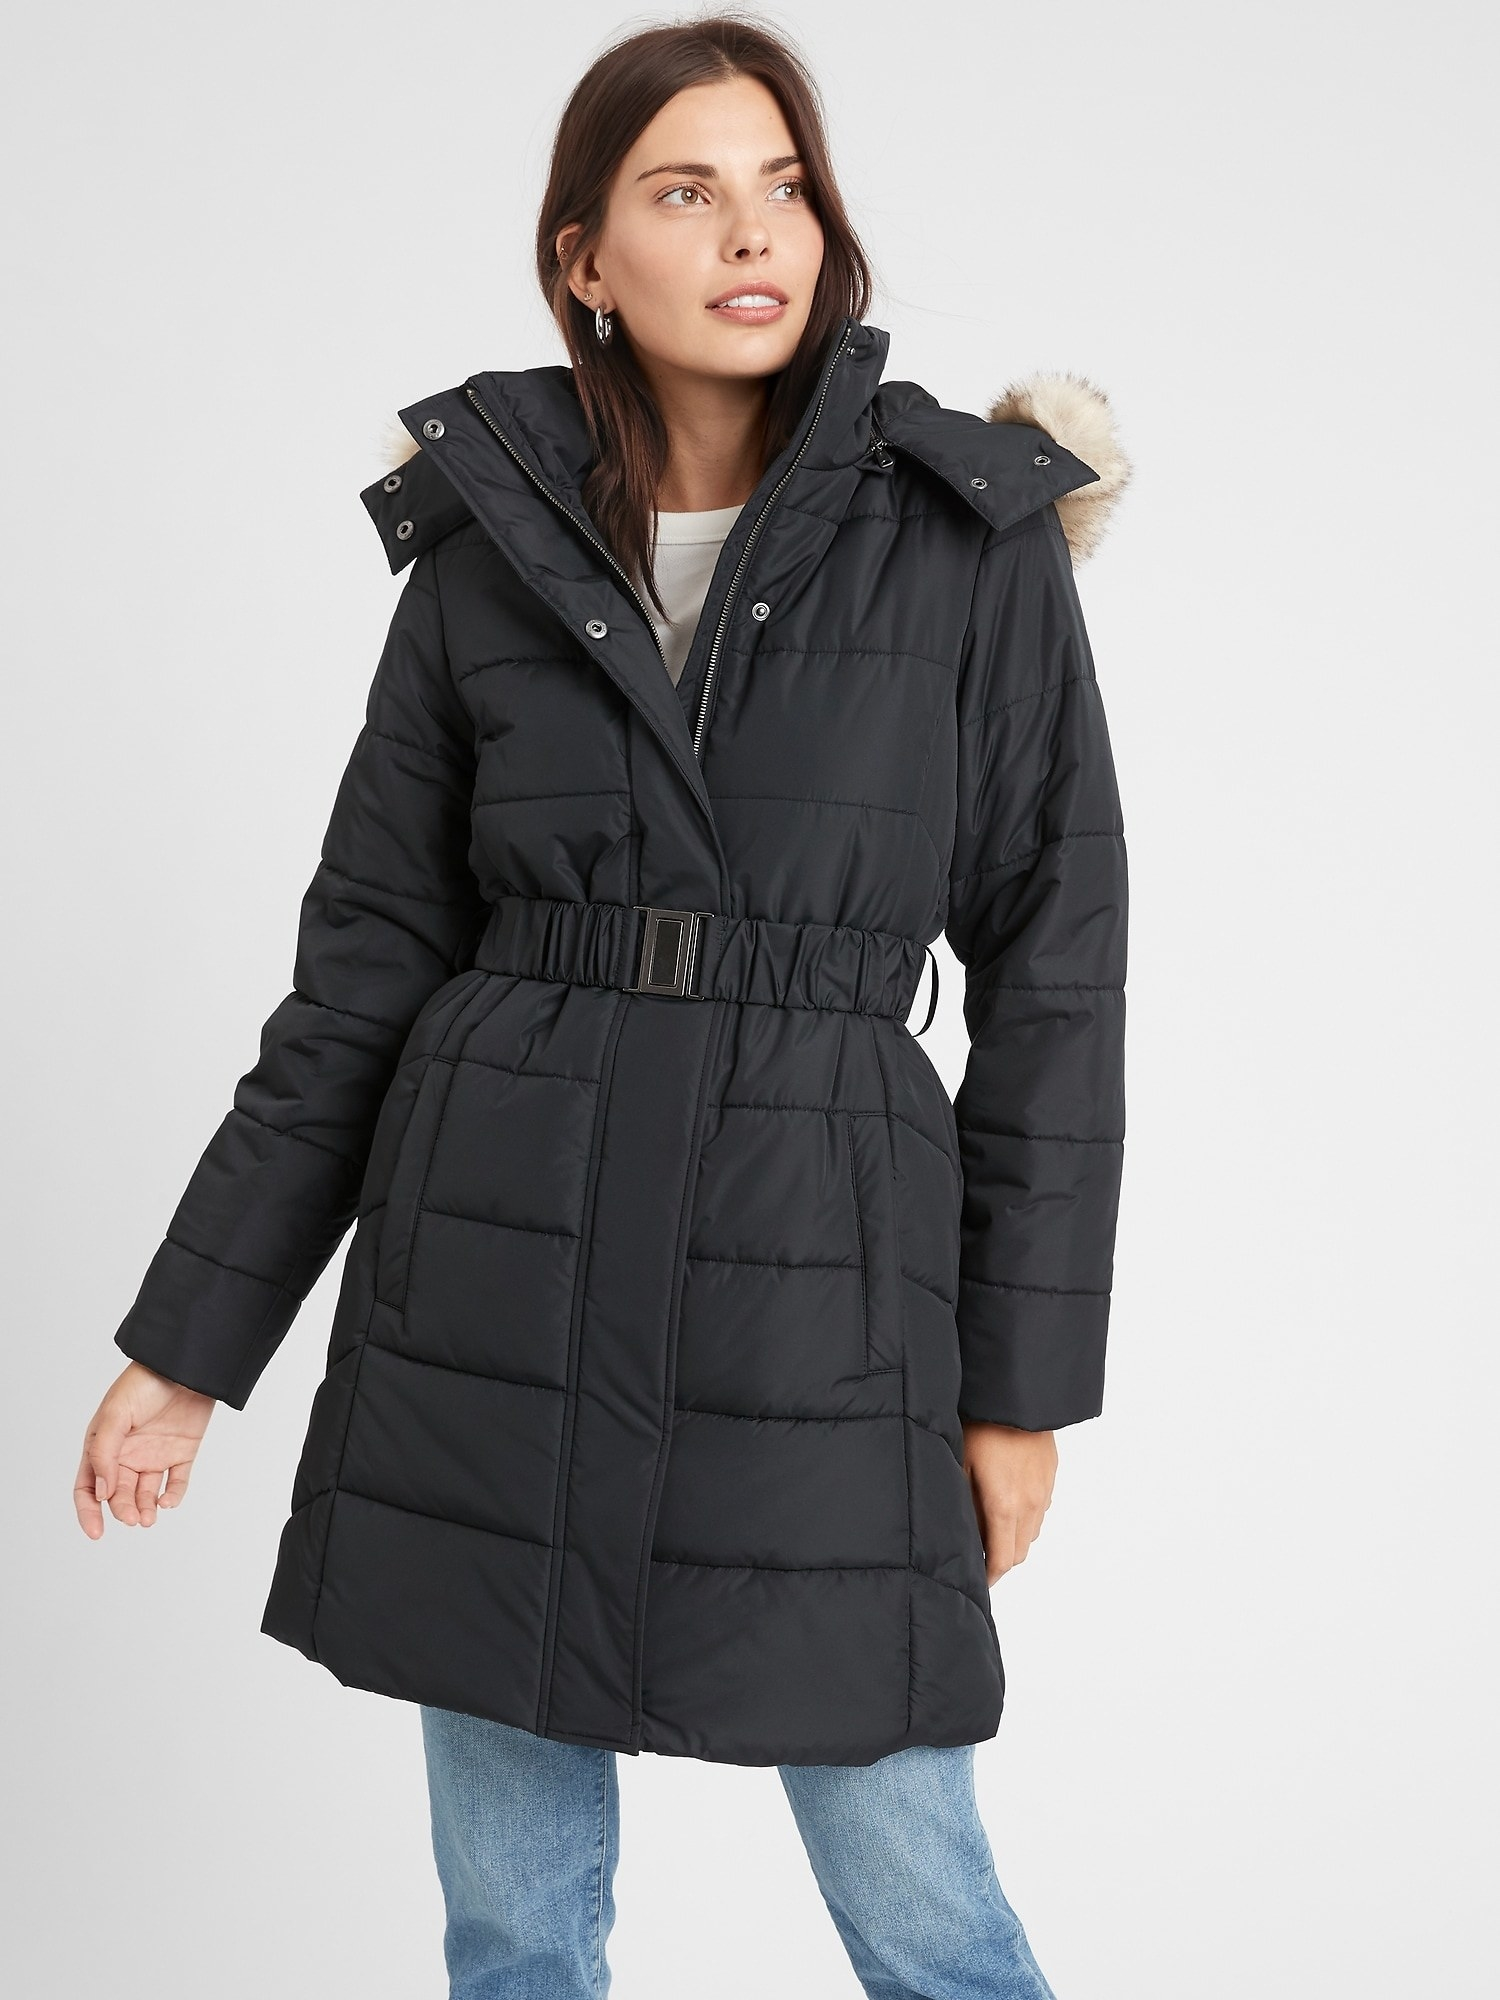 Model in the black quilted jacket